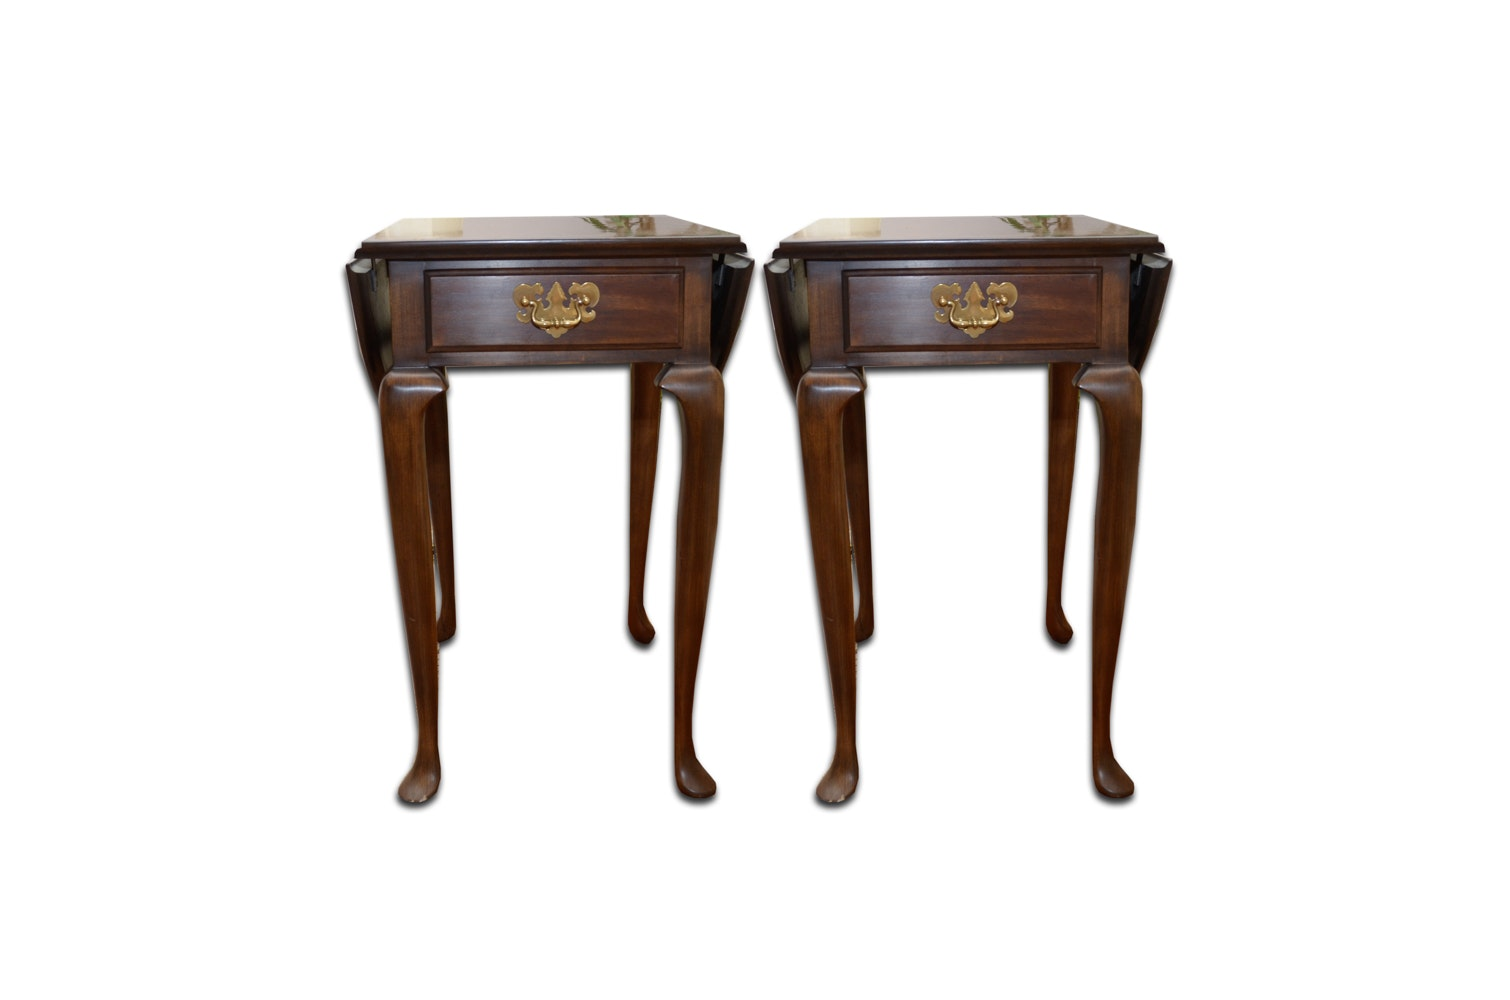 Pair of Queen Anne Style Drop Leaf End Tables by Harden